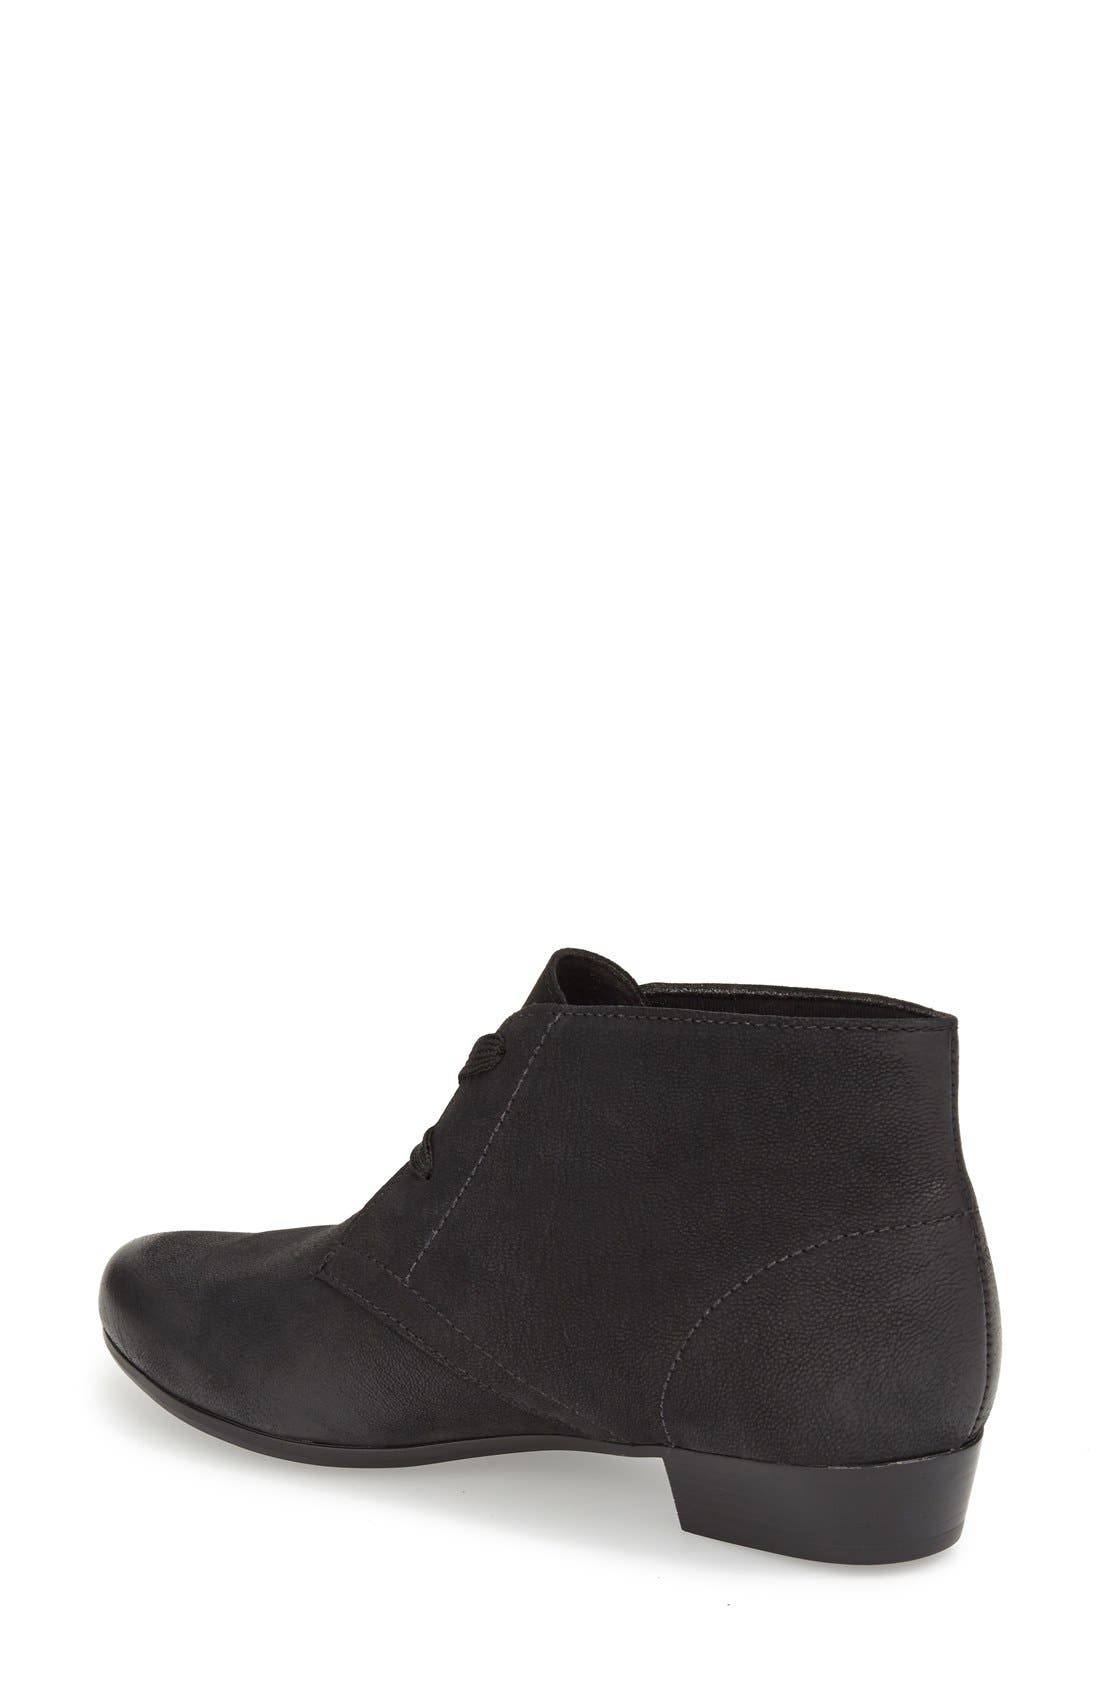 Alternate Image 2  - Munro 'Sloane' Lace Up Bootie (Women)